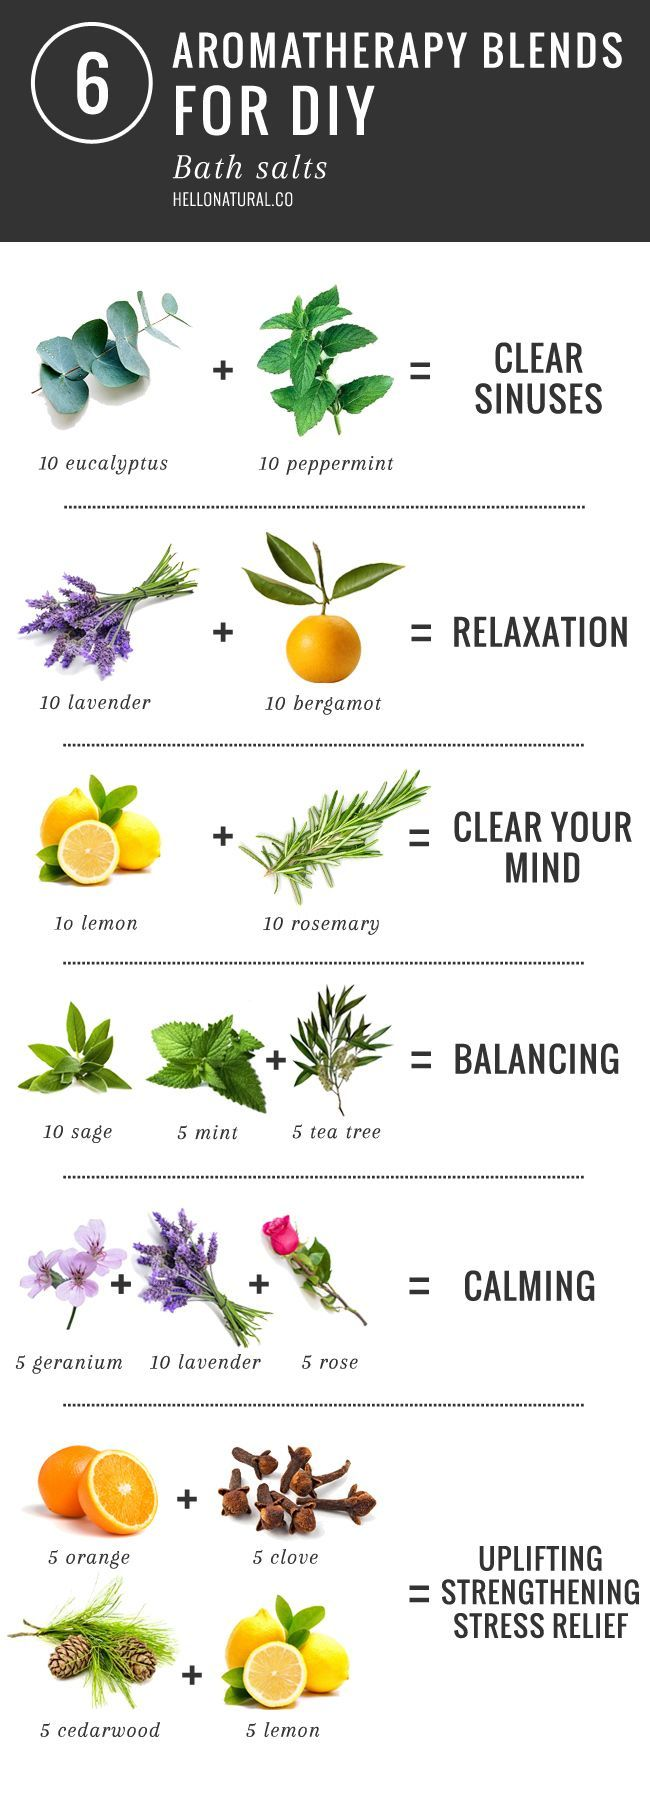 6 Aromatherapy Bath Blends | . I like this as a guide for diffusing oils too.